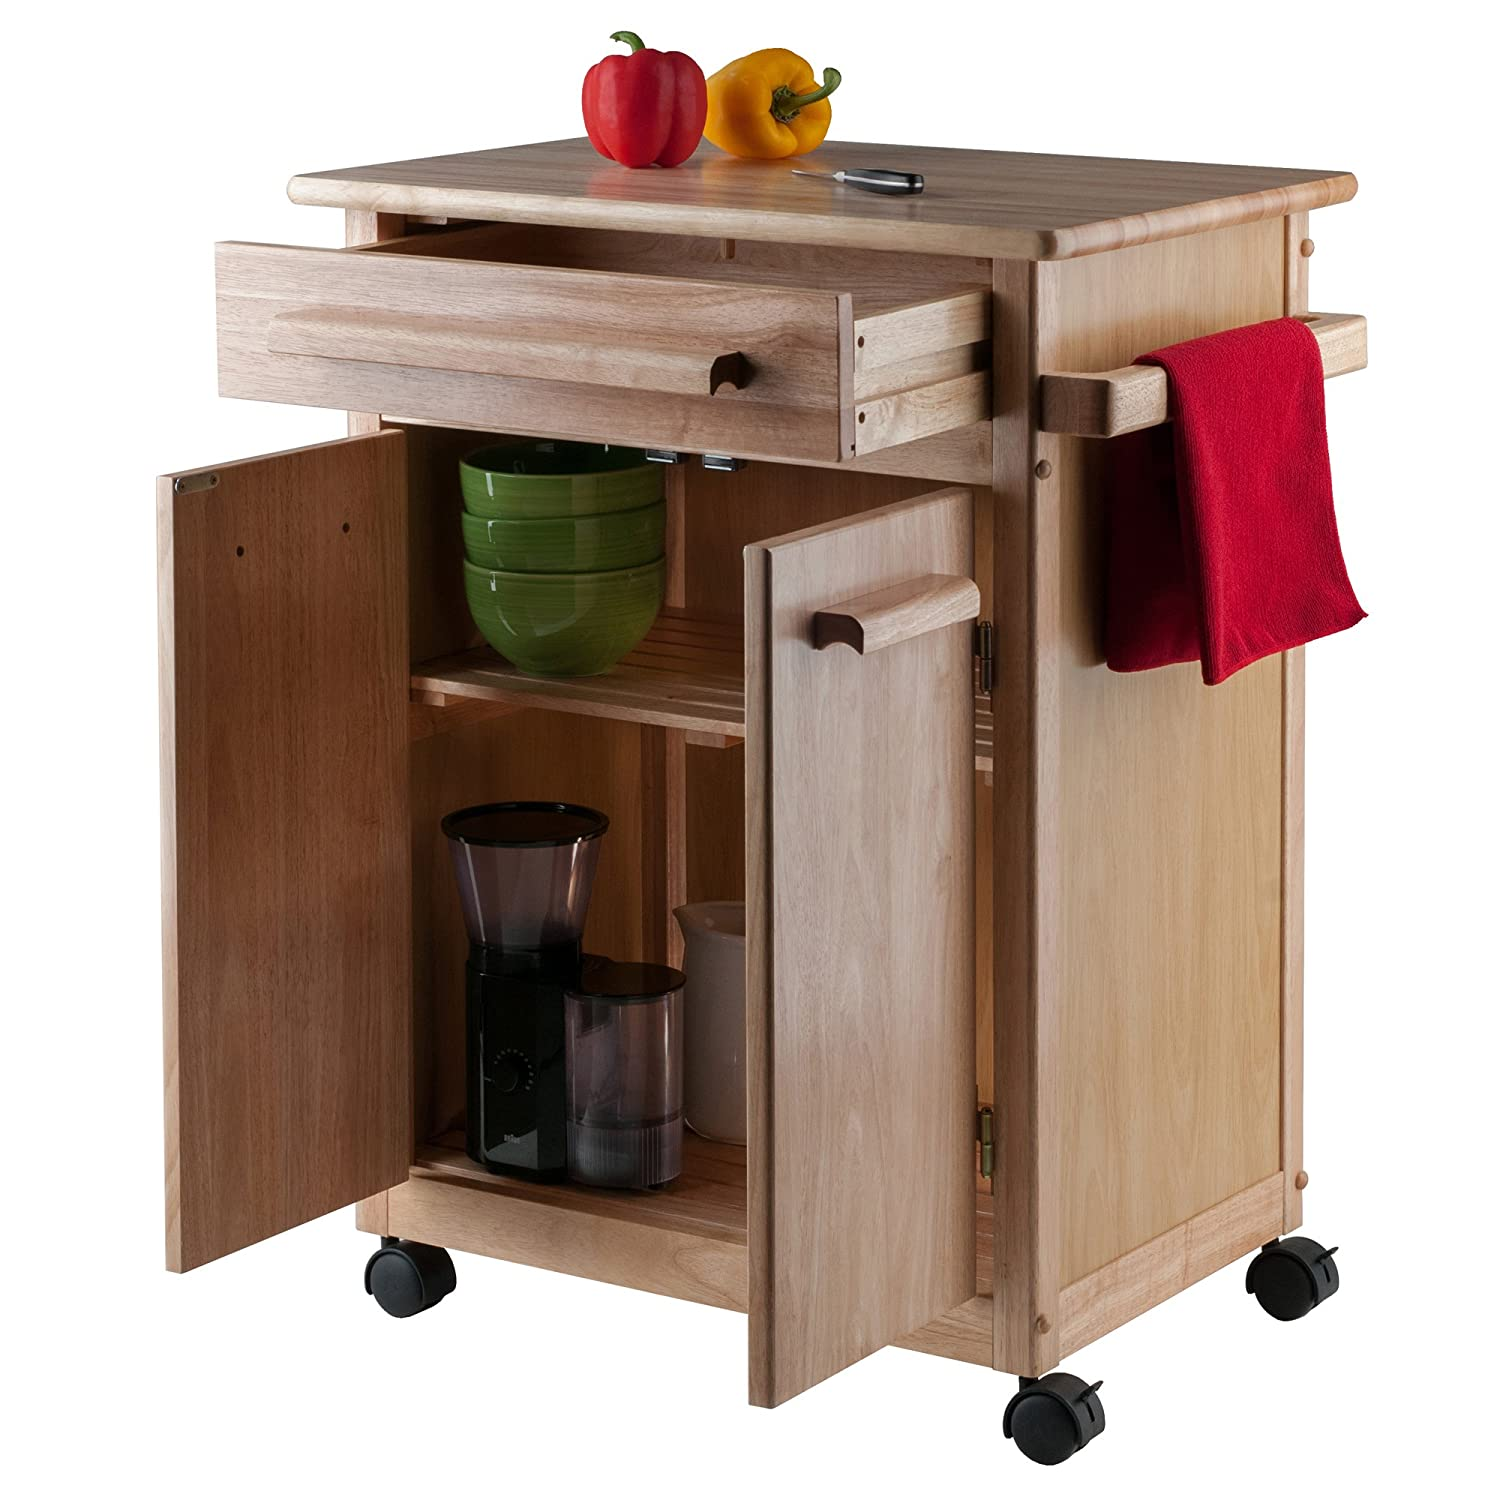 Amazon com winsome wood single drawer kitchen cabinet storage cart natural kitchen islands carts